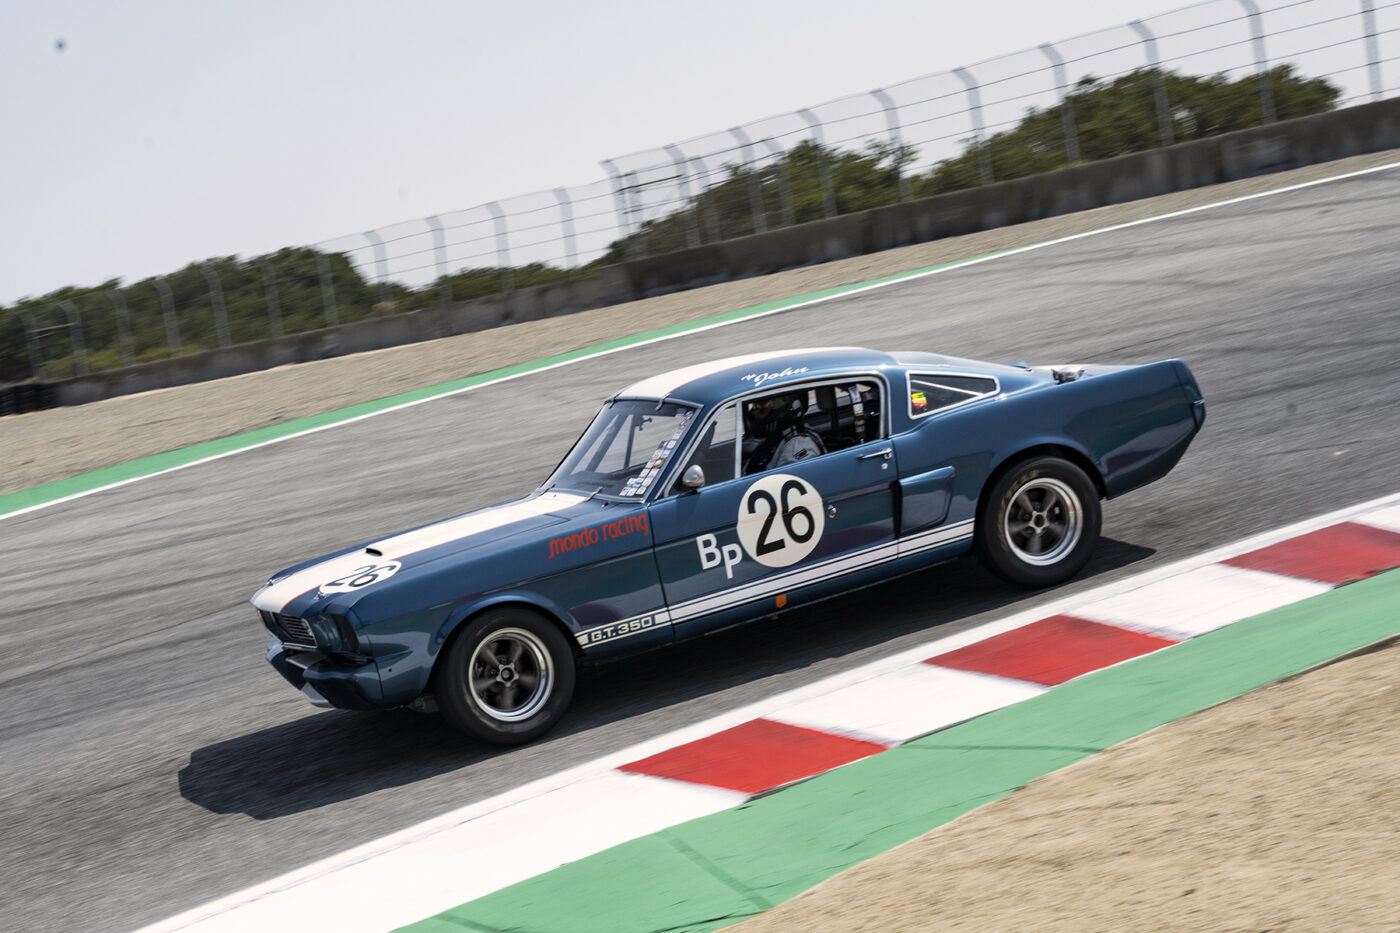 A 1966 Shelby GT350 4700 driven by John Linfesty tops the crest dropping into the Corkscrew. ©2021 Dennis Gray